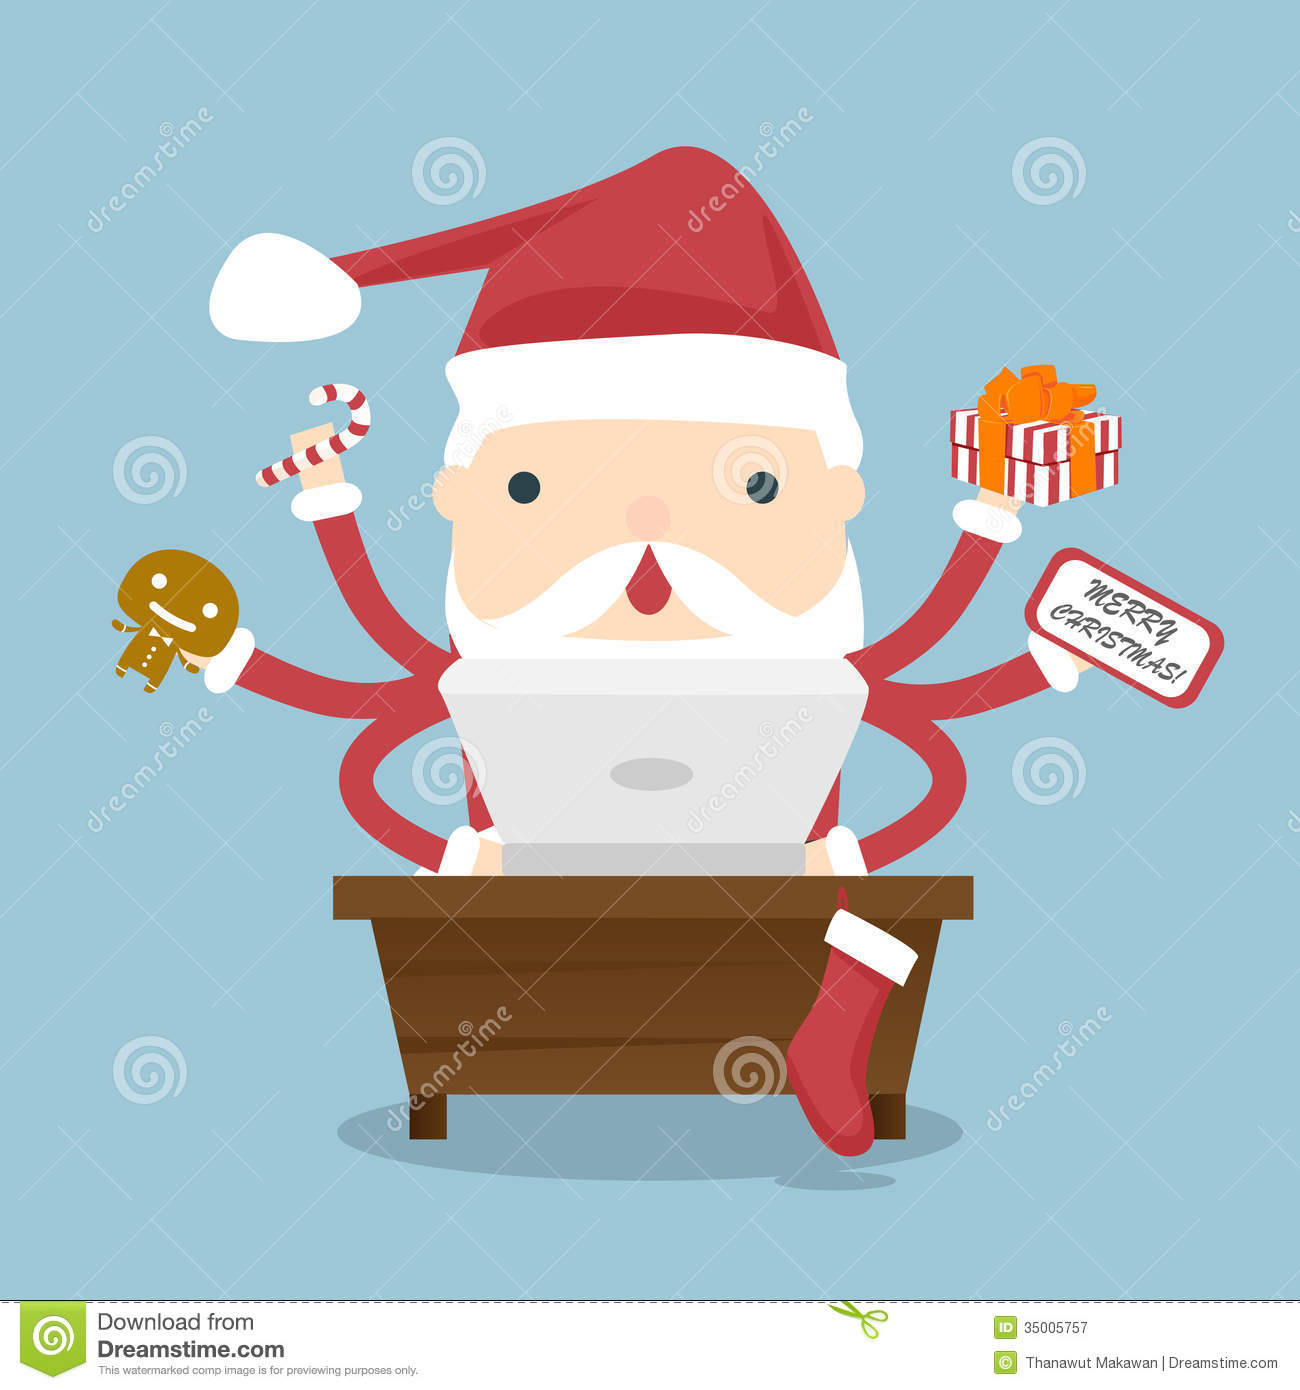 Santa Claus Busy Royalty Free Stock Photography - Image: 35005757